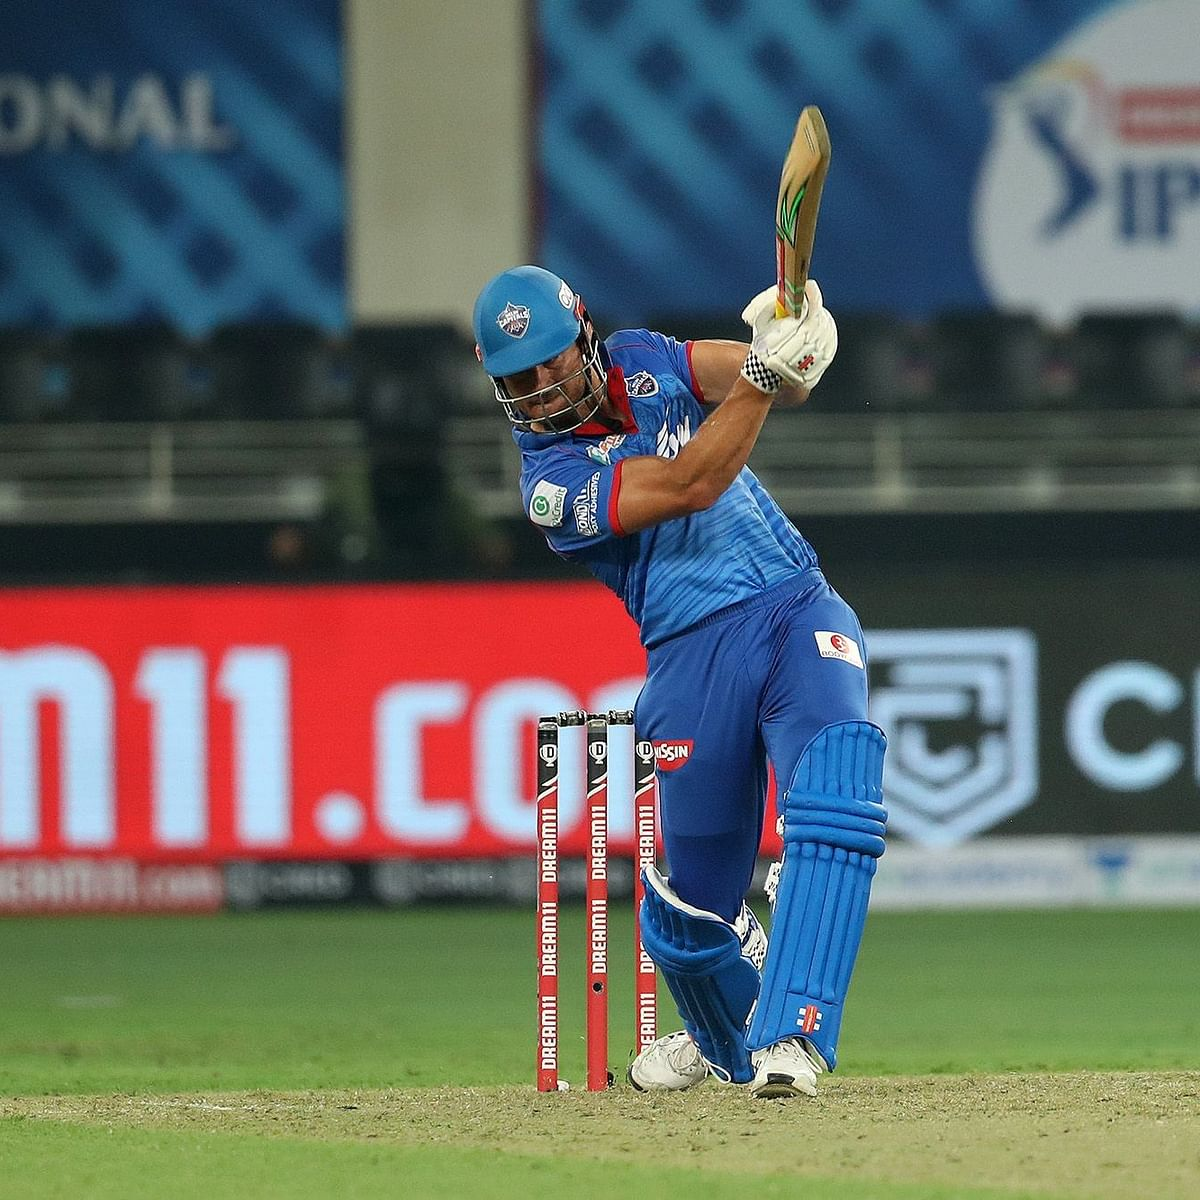 Mumbai Indians vs Delhi Capitals: Marcus Stoinis' second opening spell in IPL fails miserably; becomes first to get golden duck in tournament final